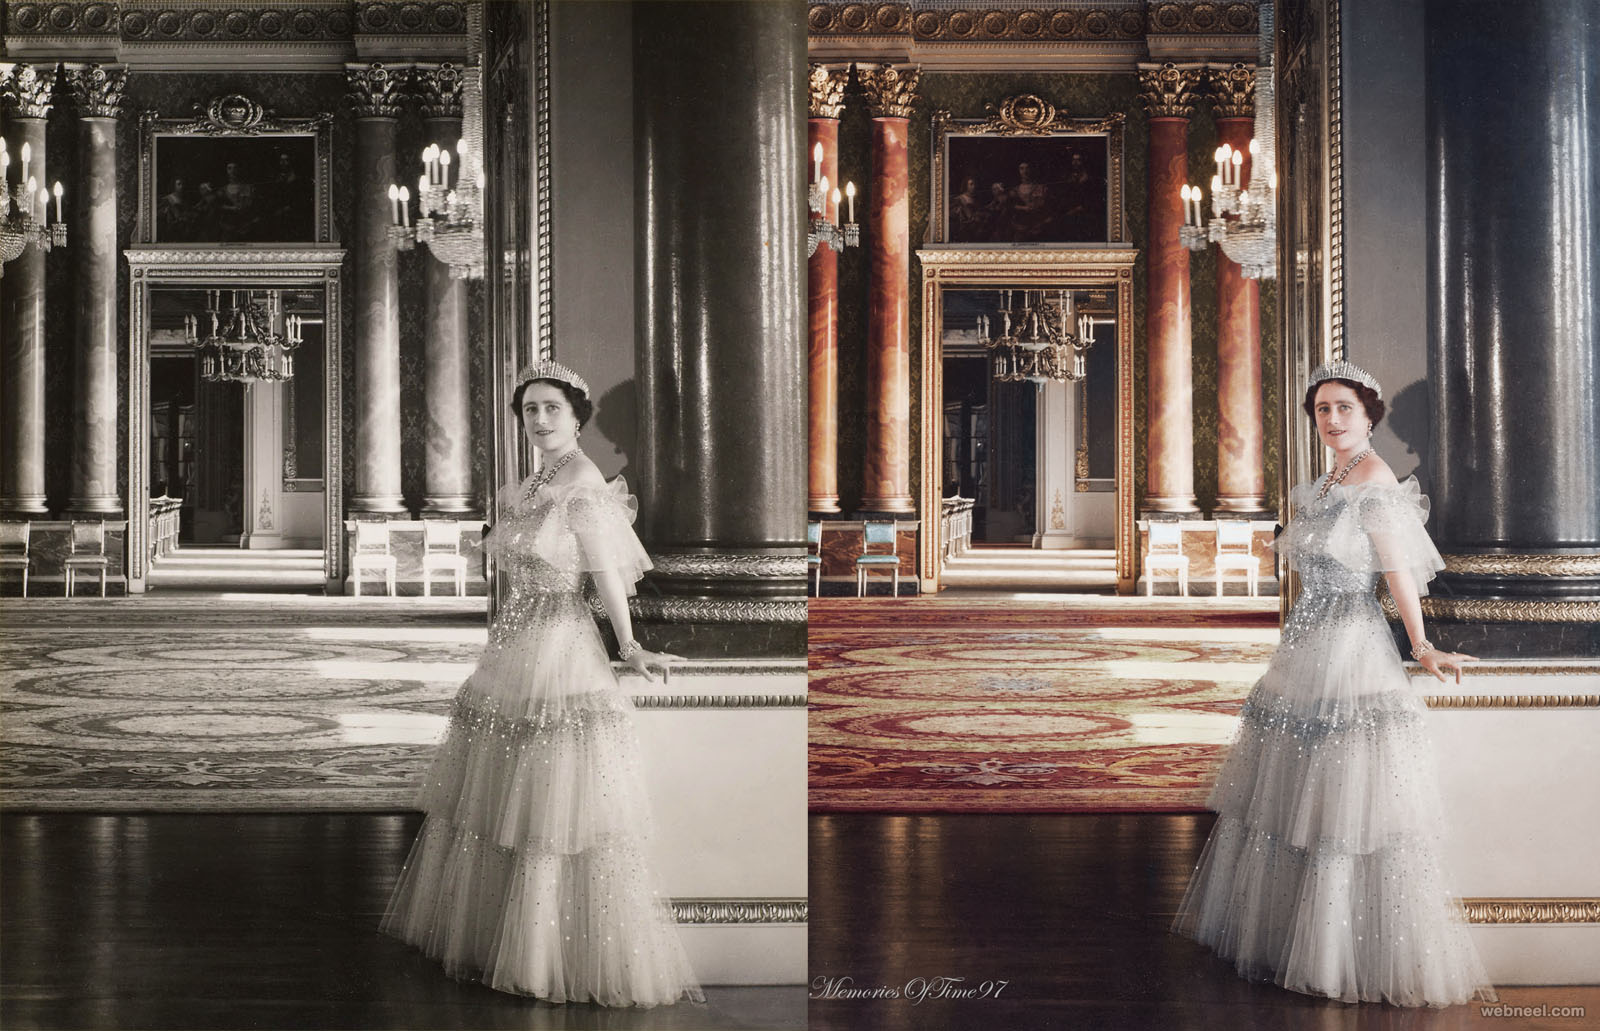 colorize old photos by memoriesoftime97